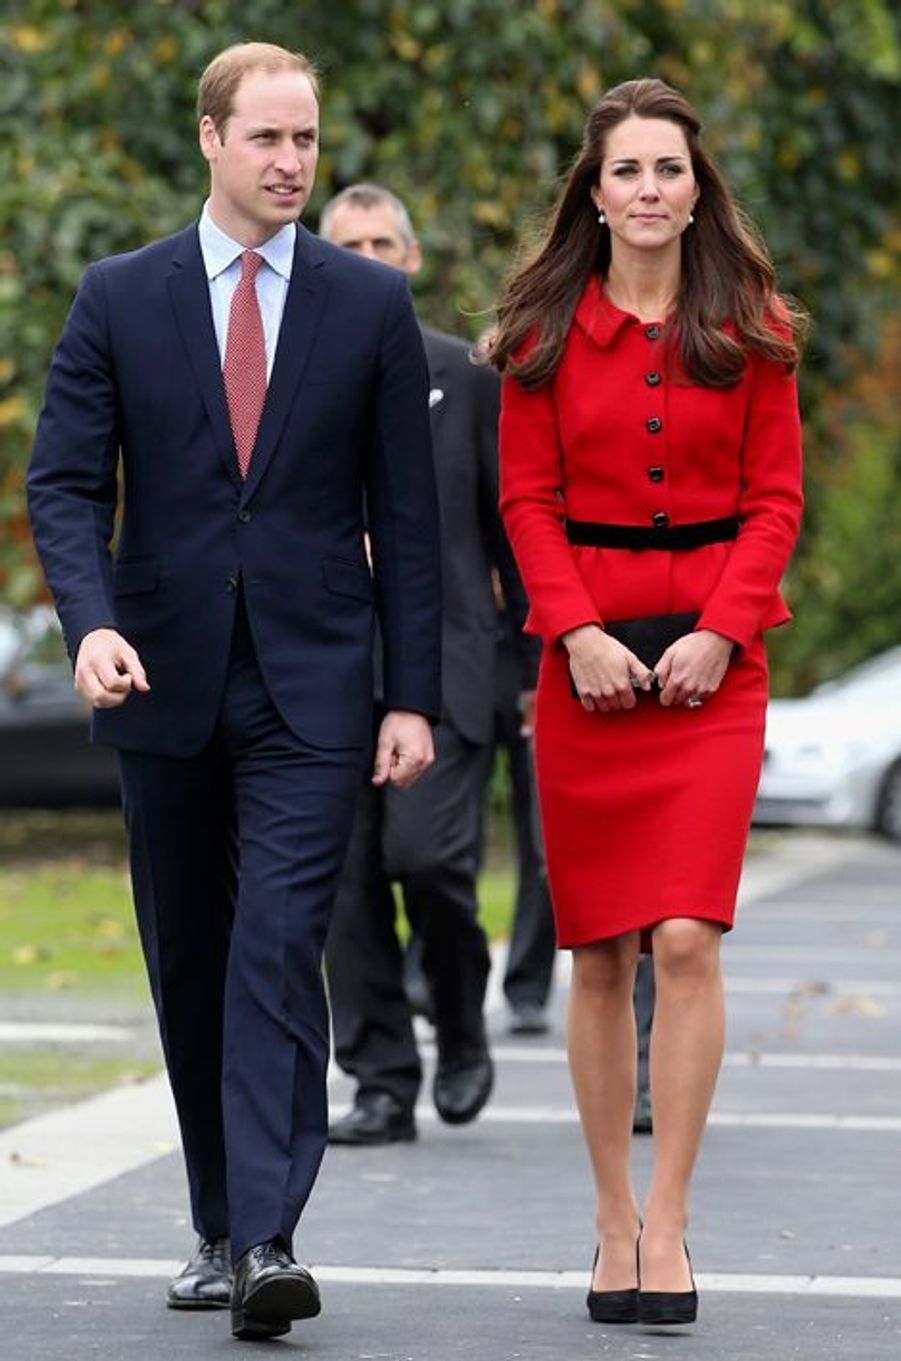 La duchesse de Cambridge Kate avec le prince William, le 14 avril 2014